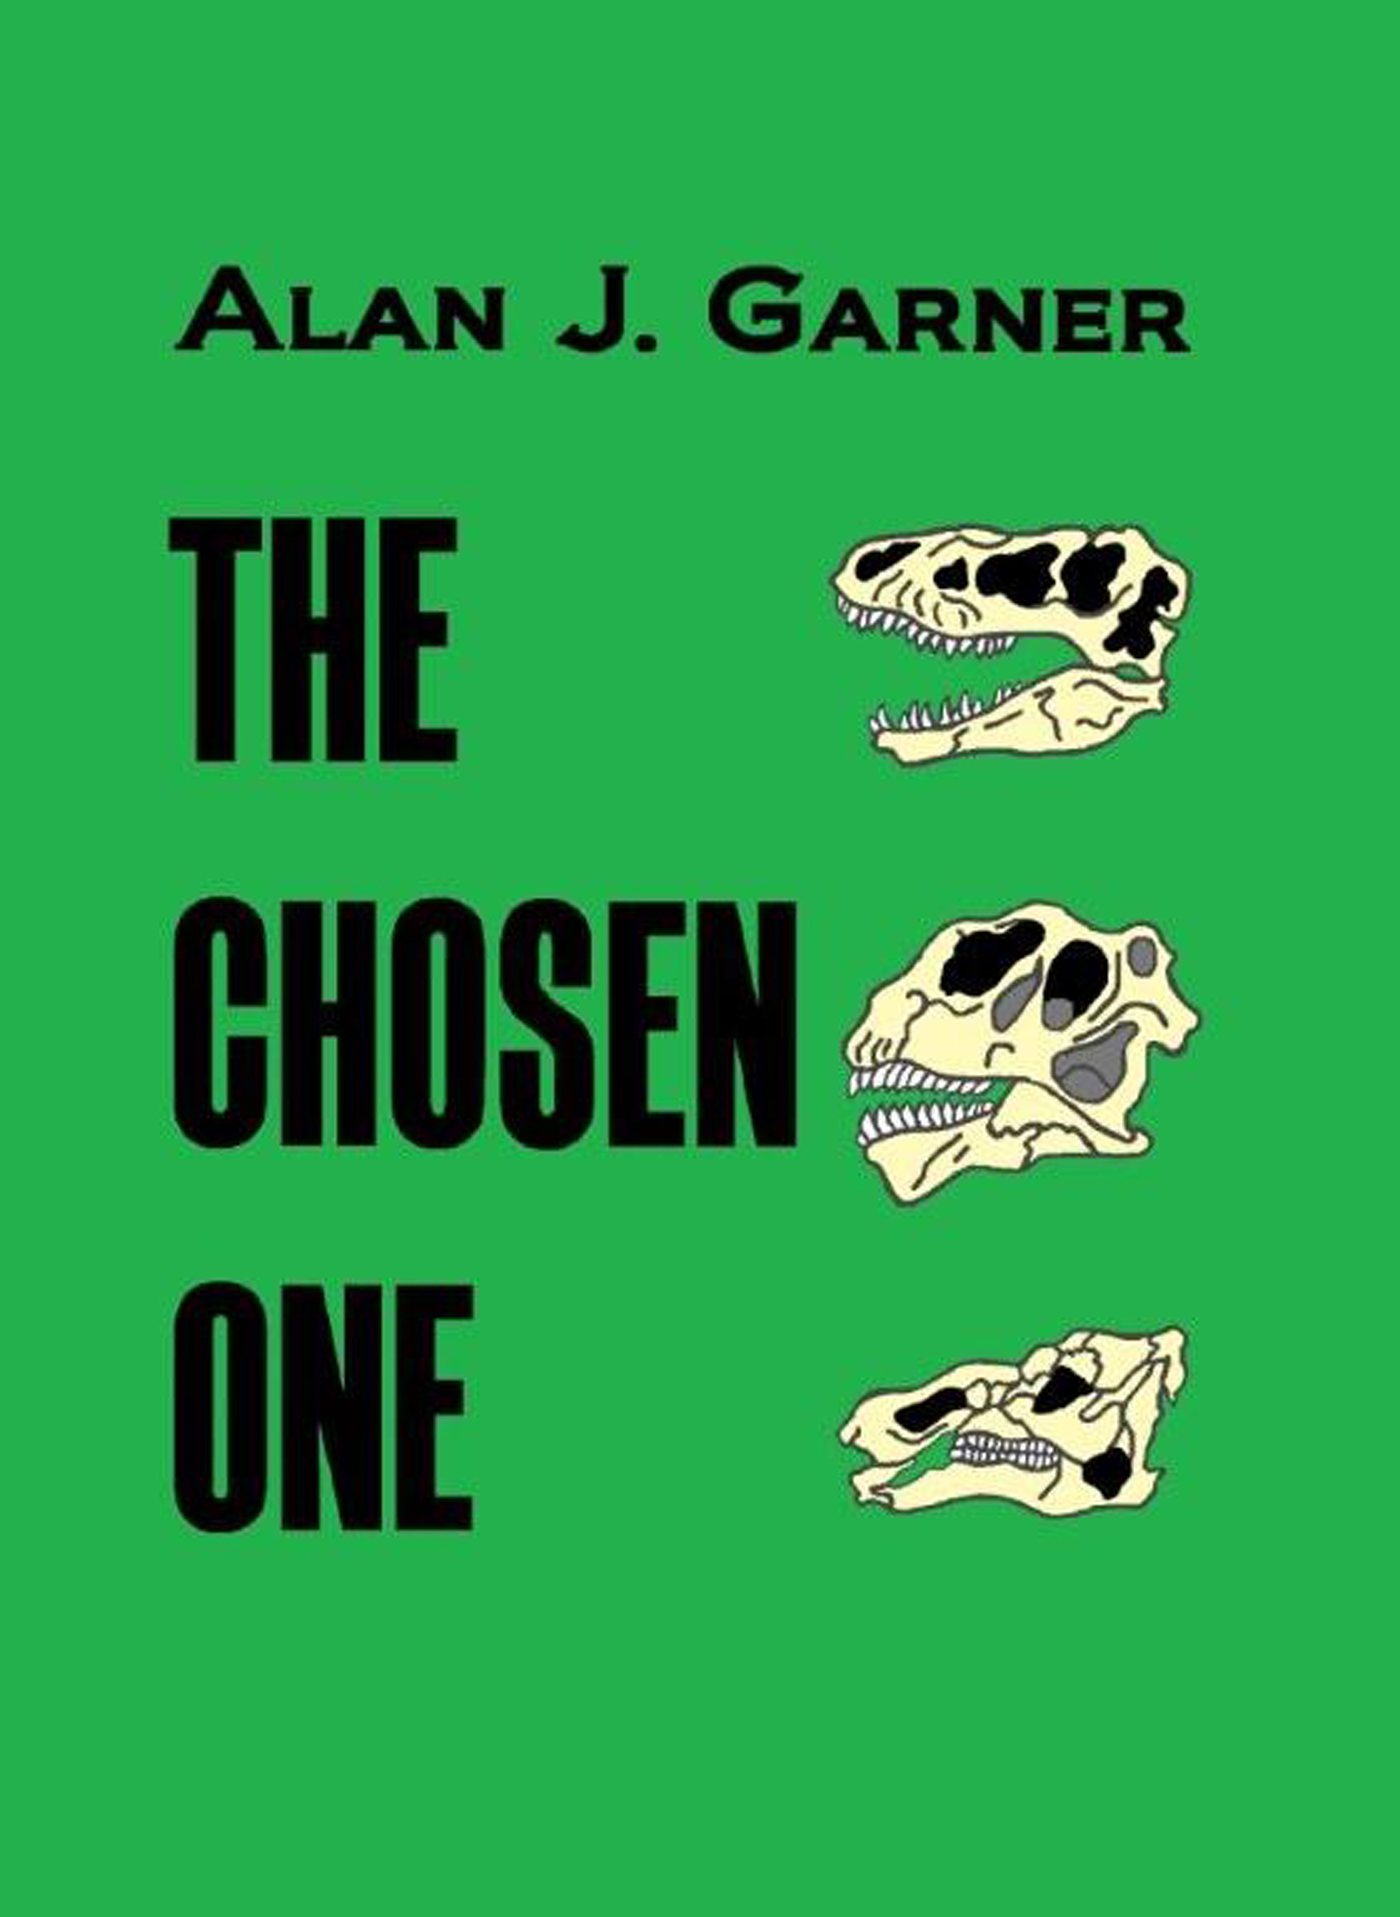 the chosen one book report